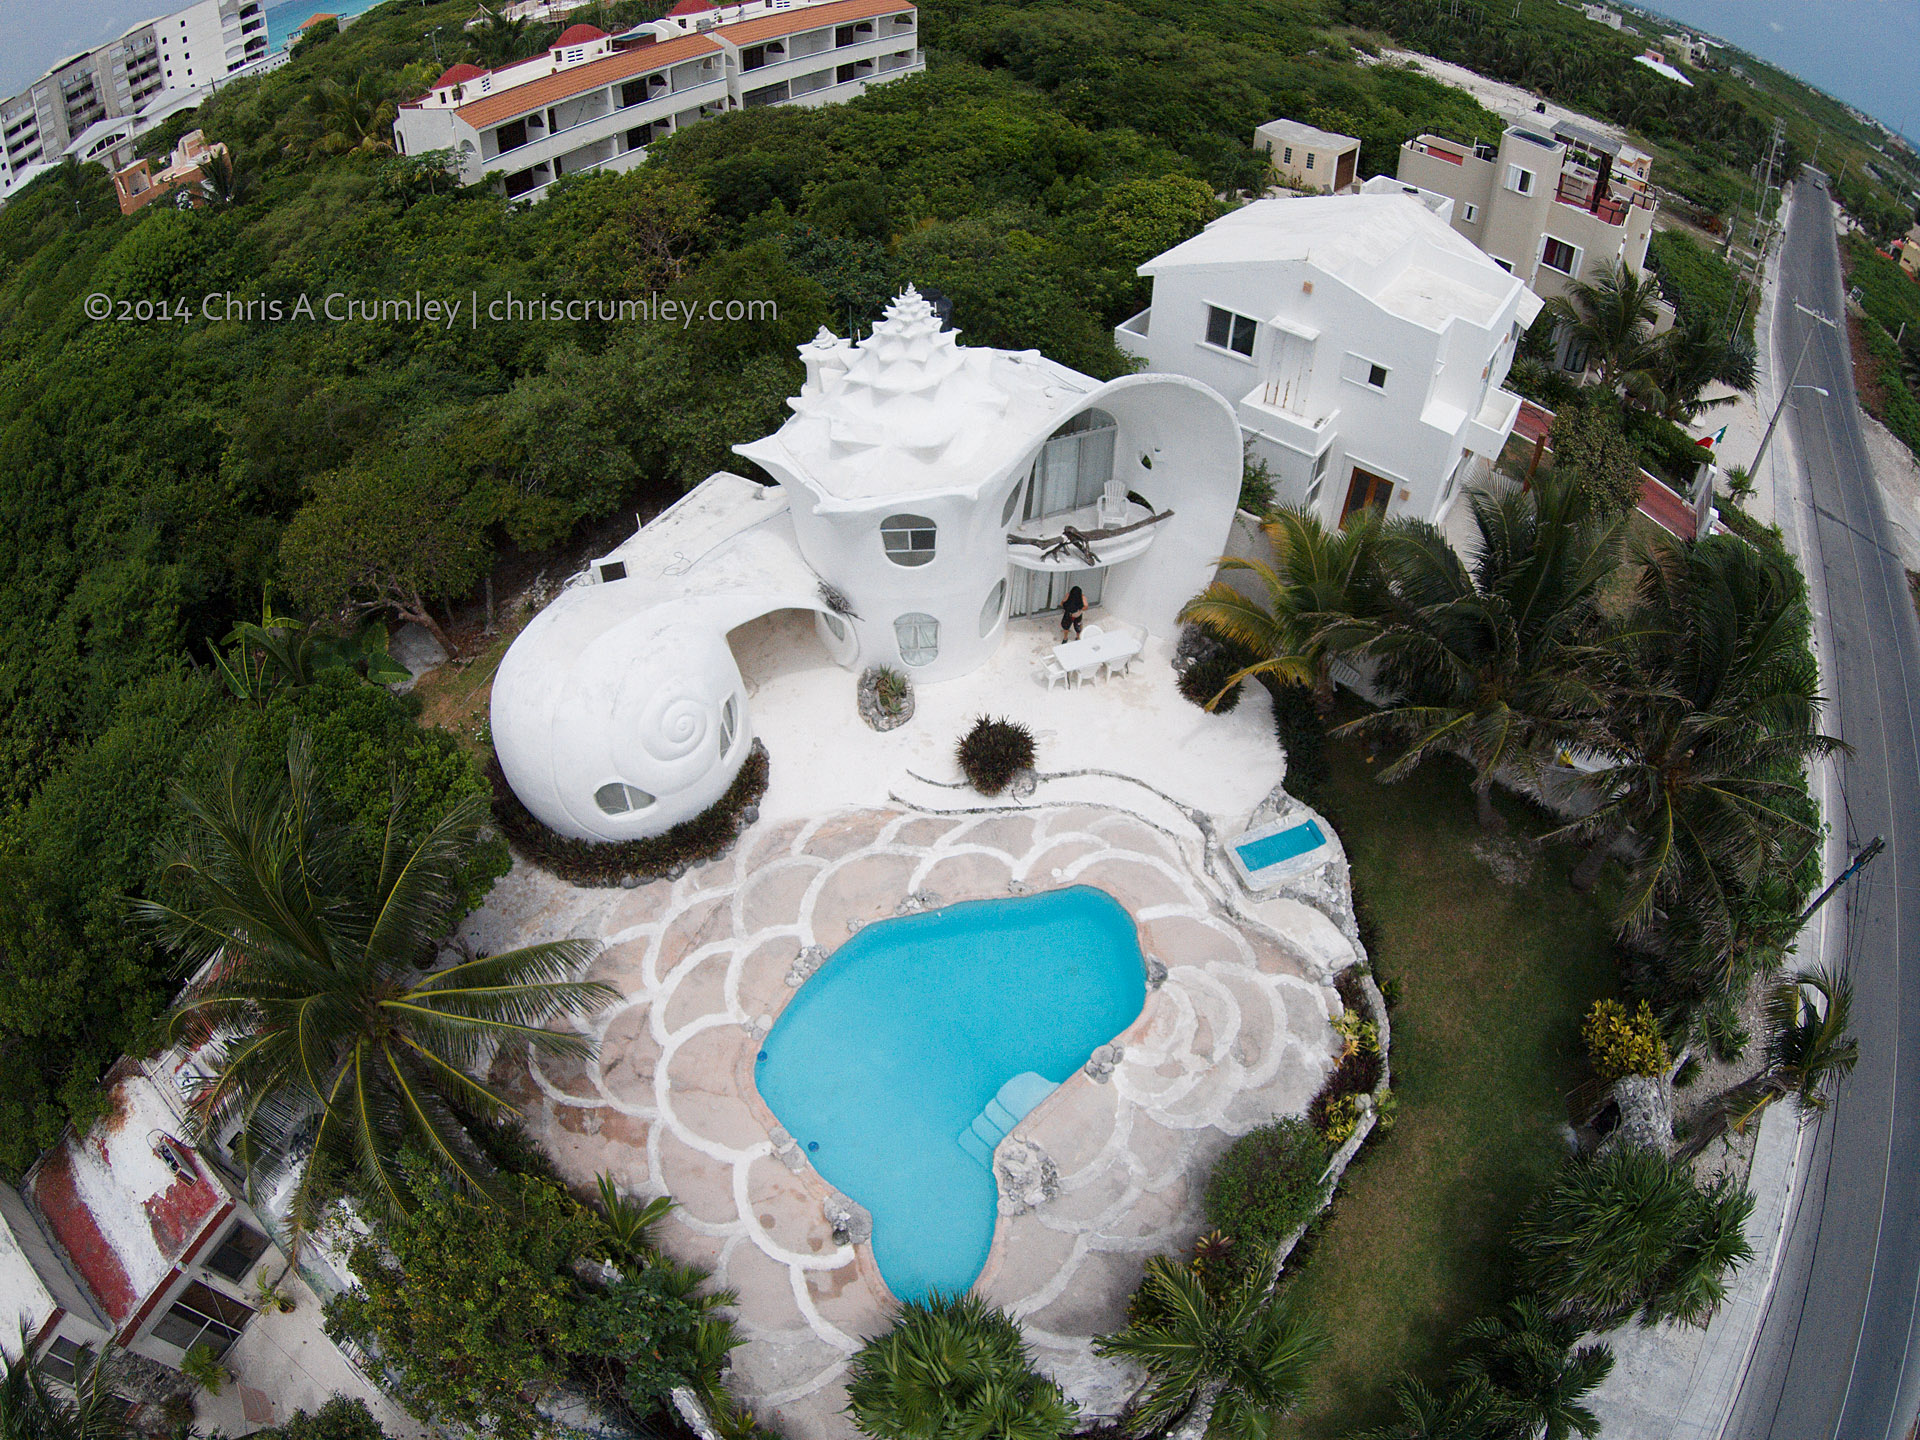 Drone Aerial of Shellhouse, Isla Mujeres, Mexico